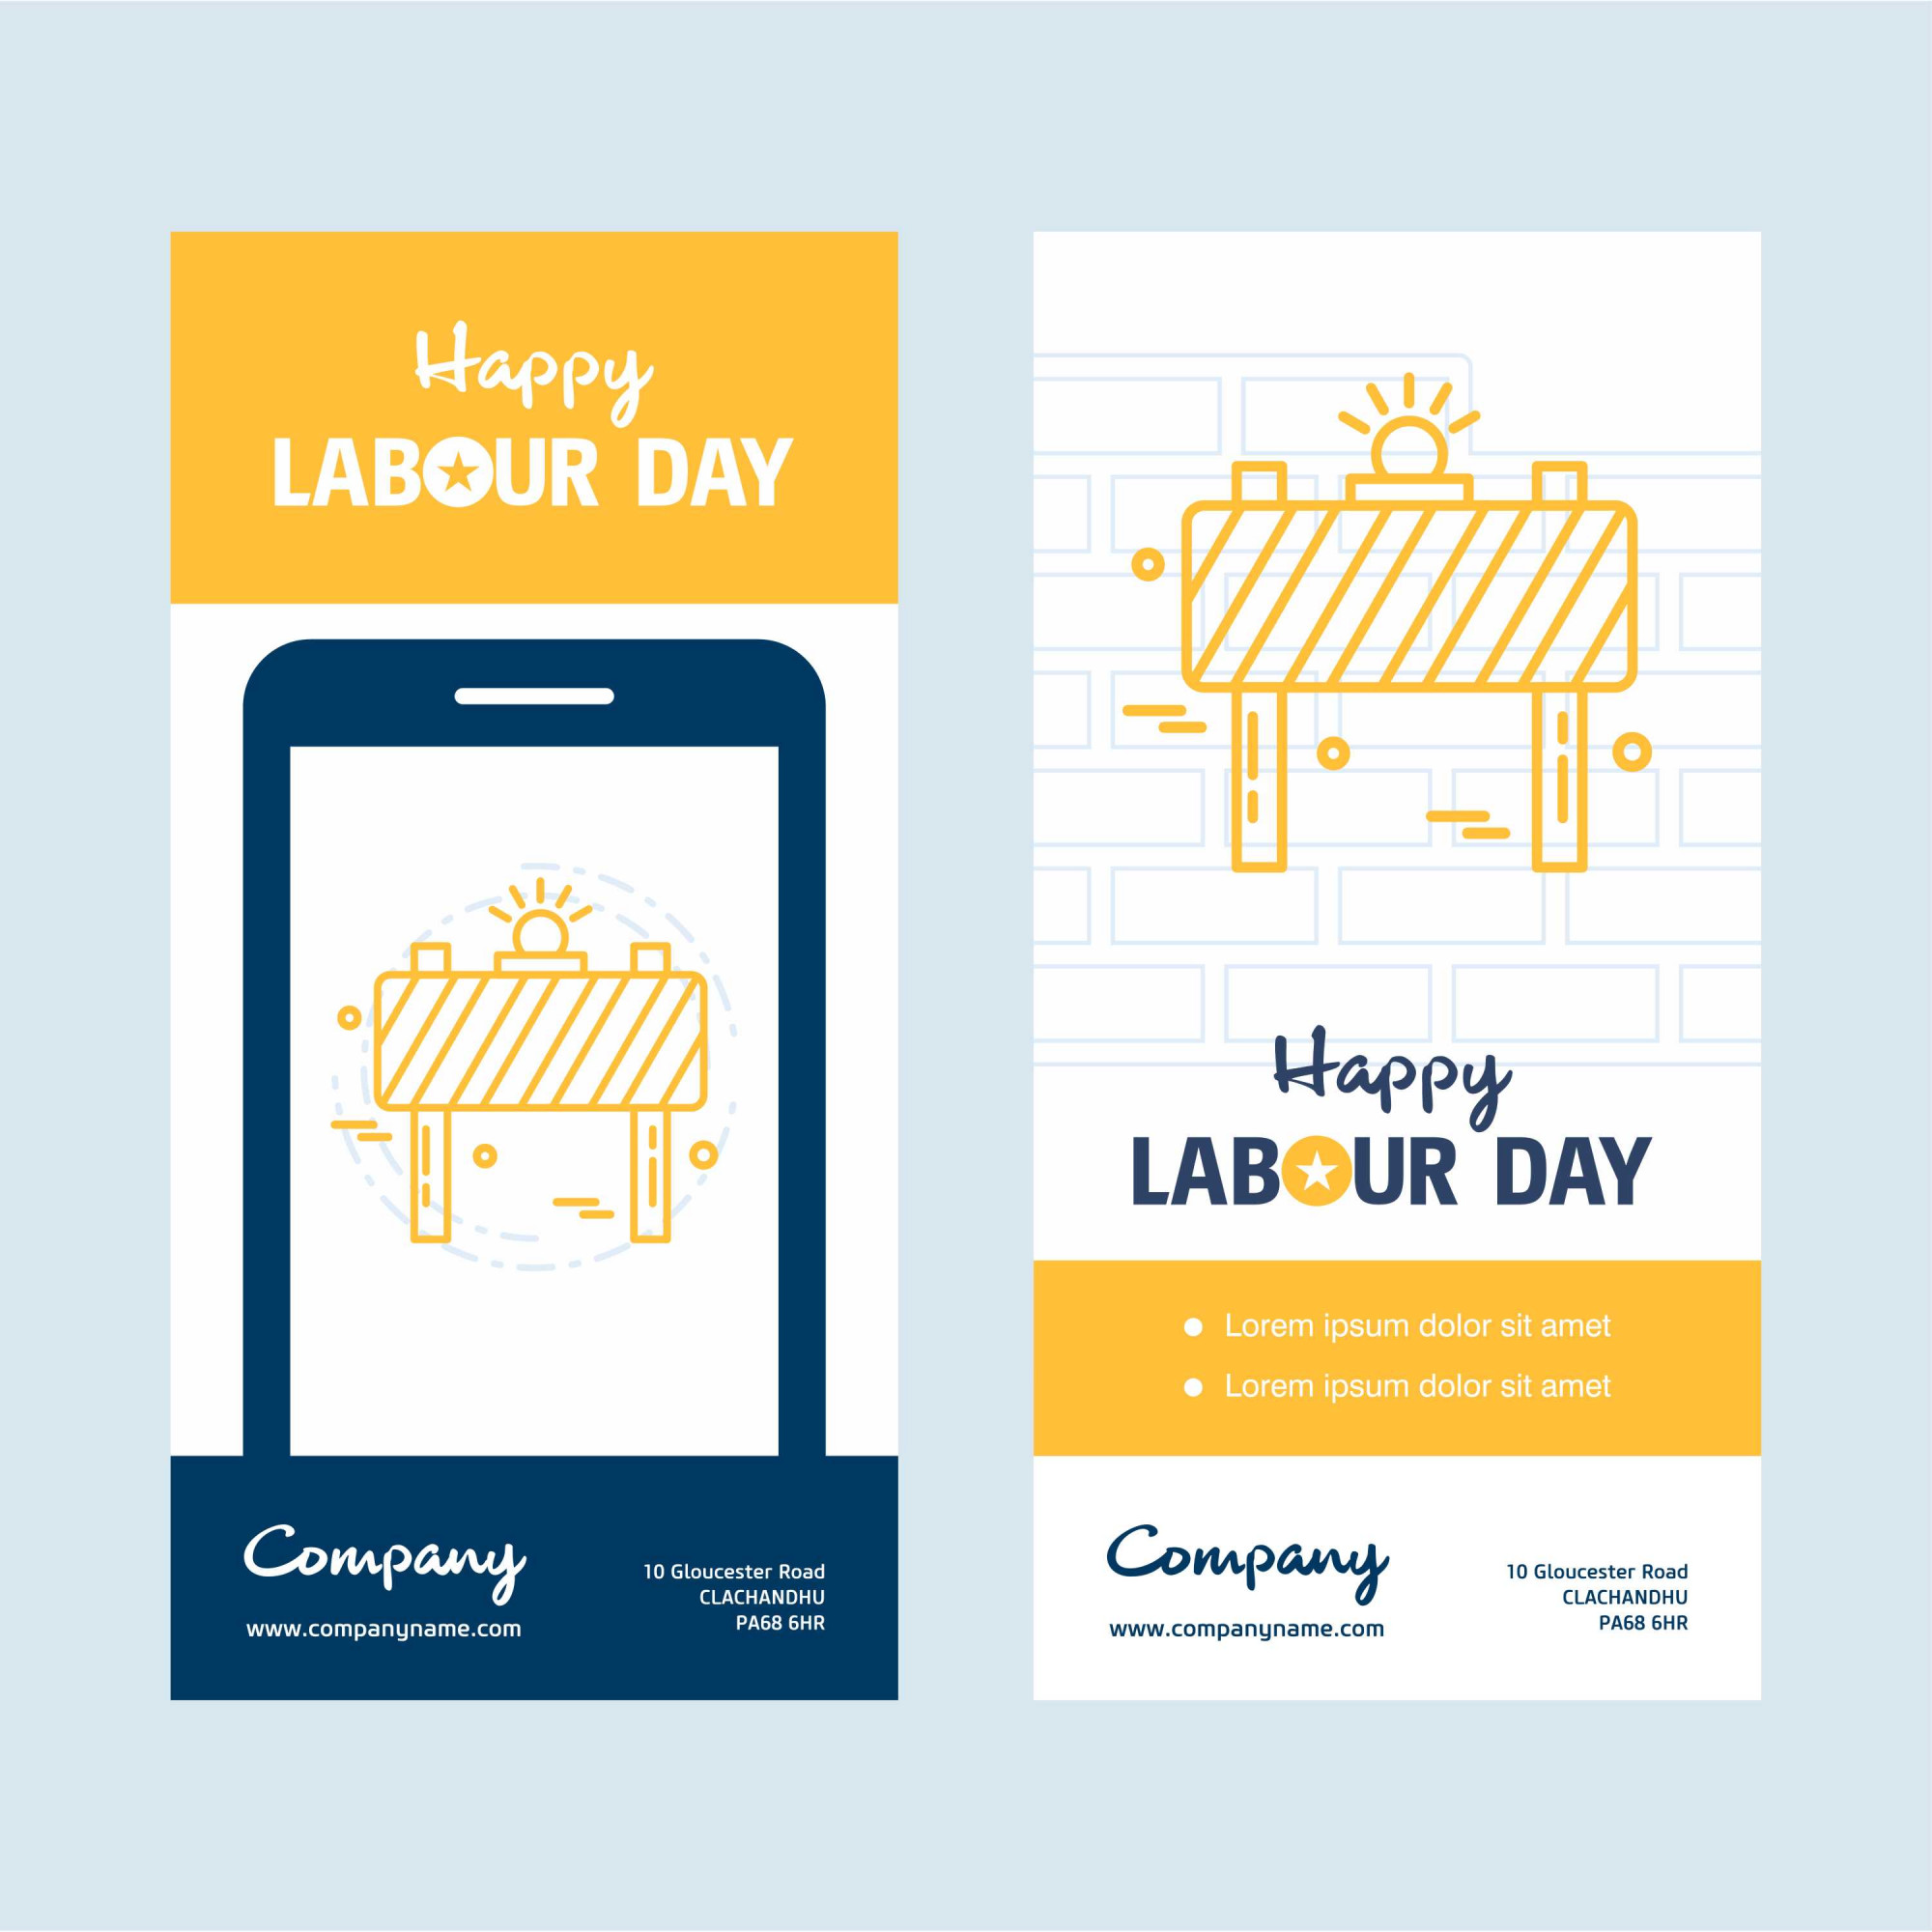 Happy Labour day design with yellow theme vector